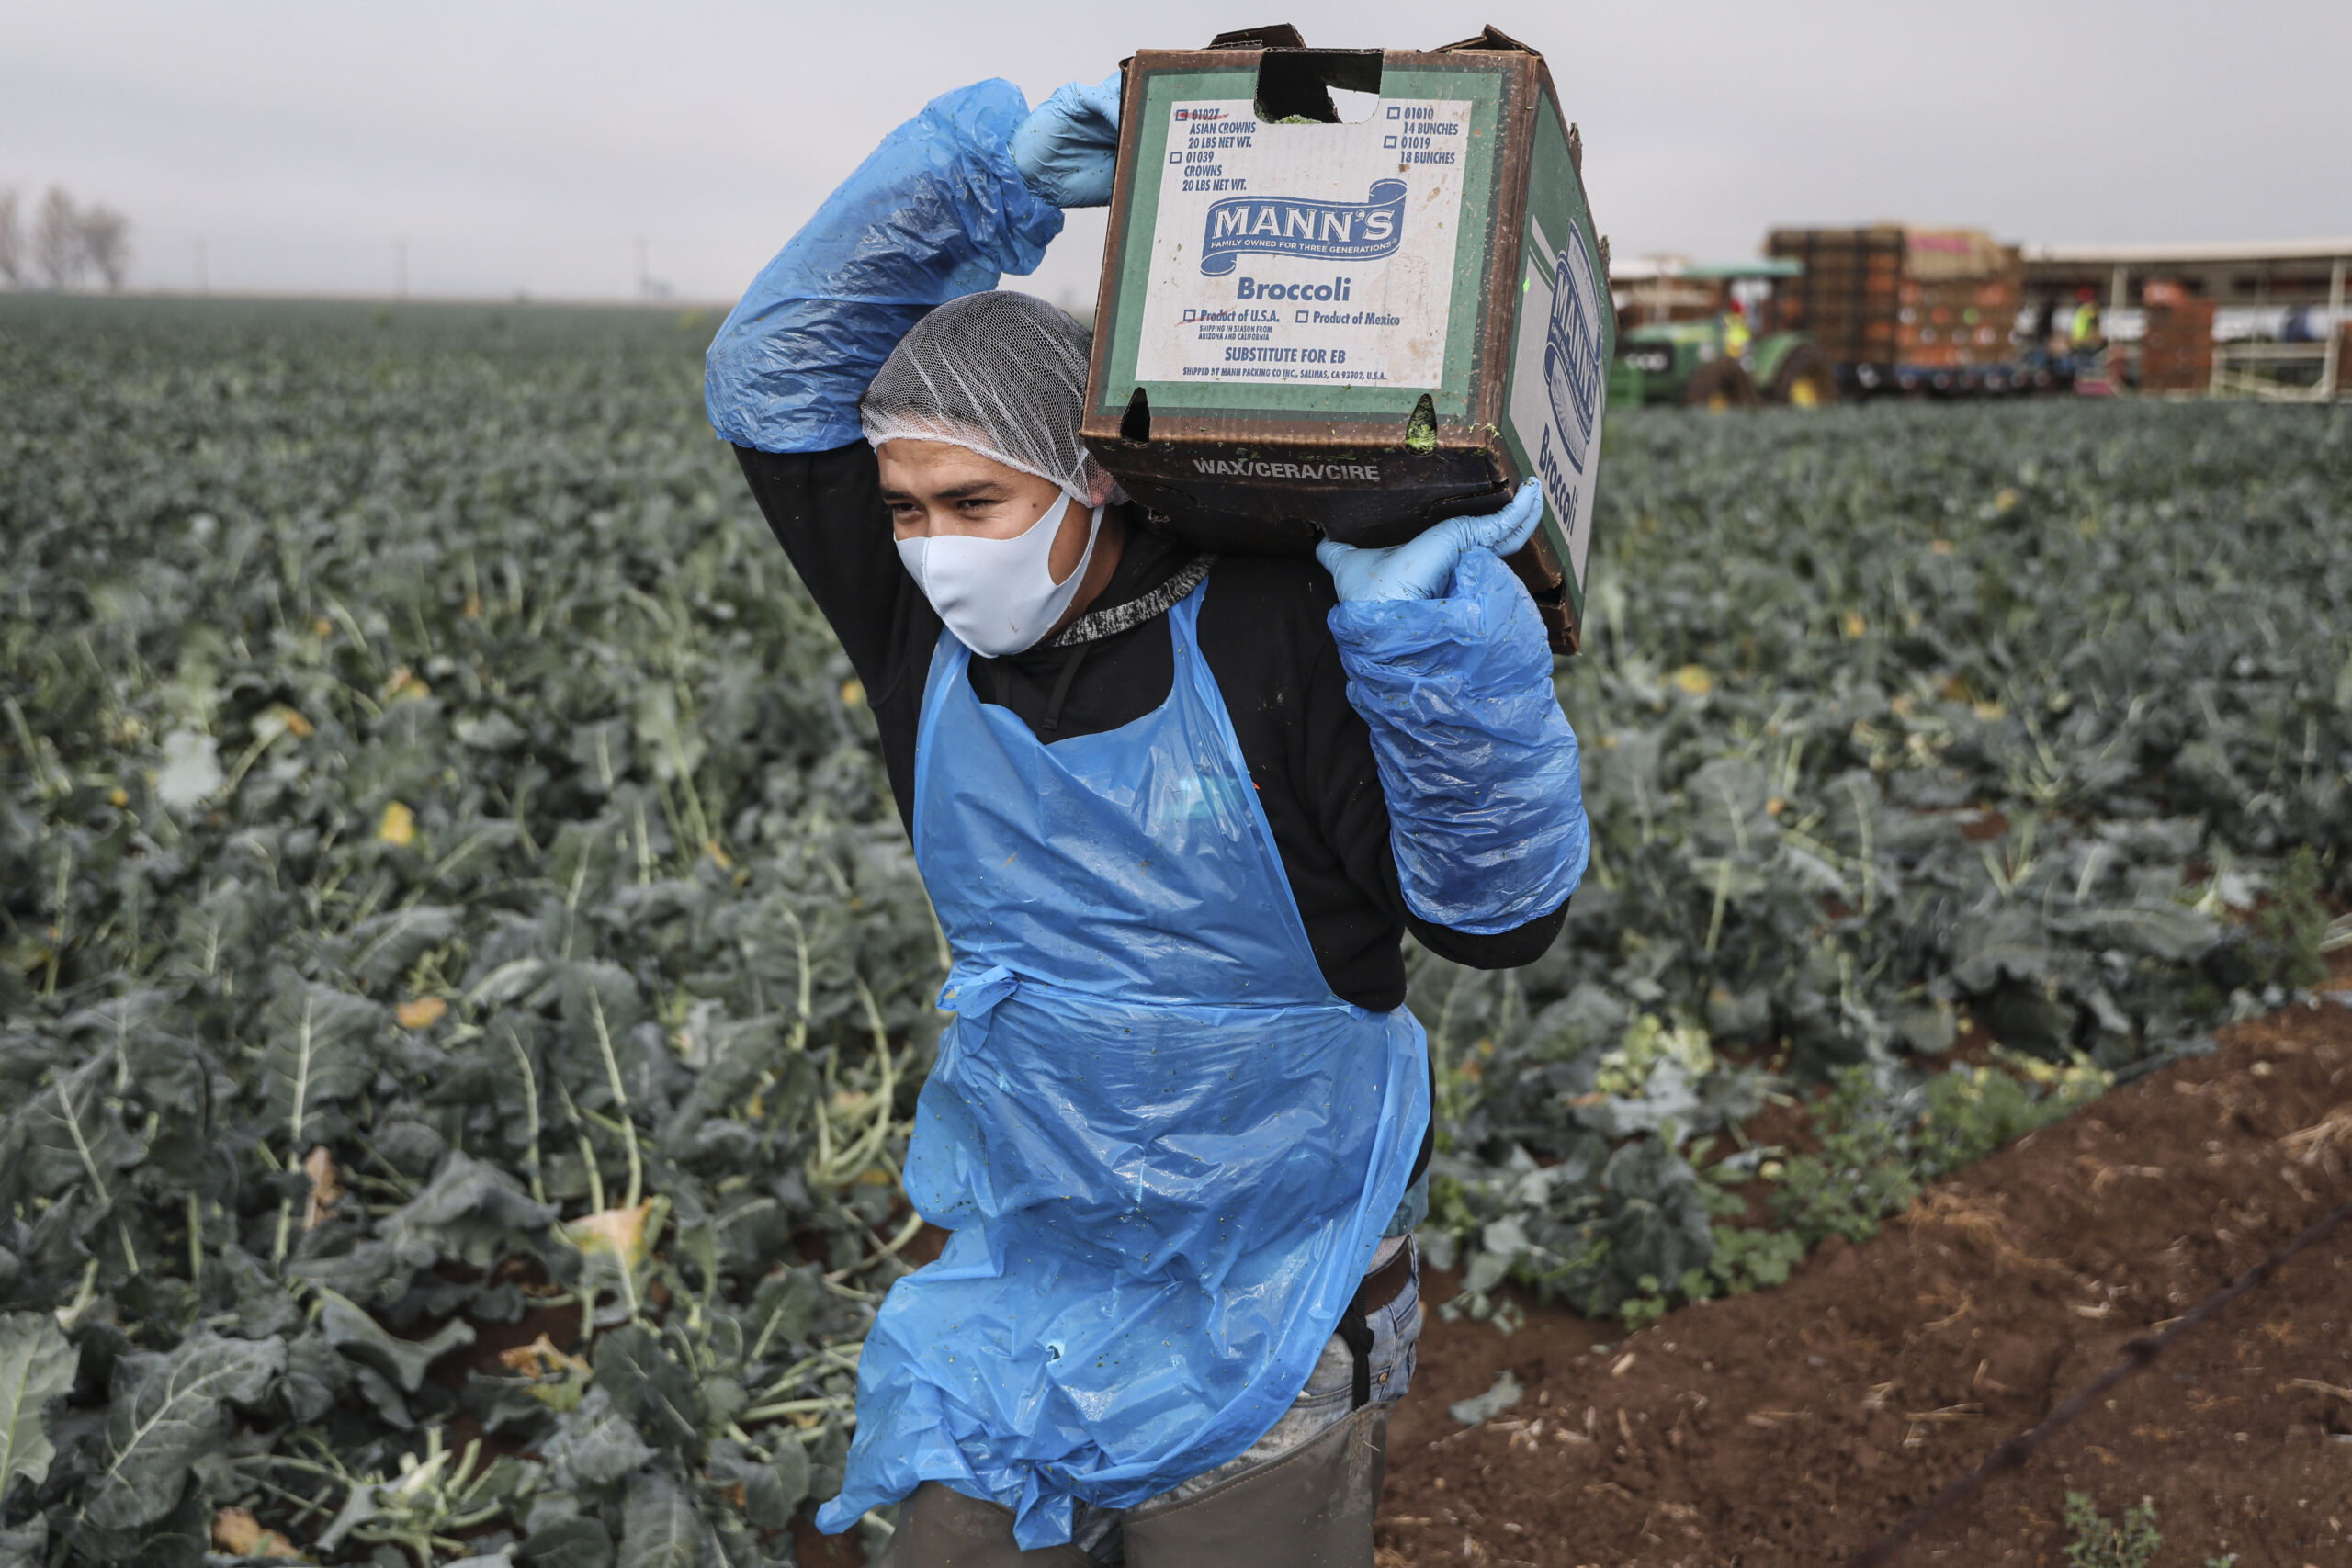 Fires Fuel New Risks to California Farmworkers